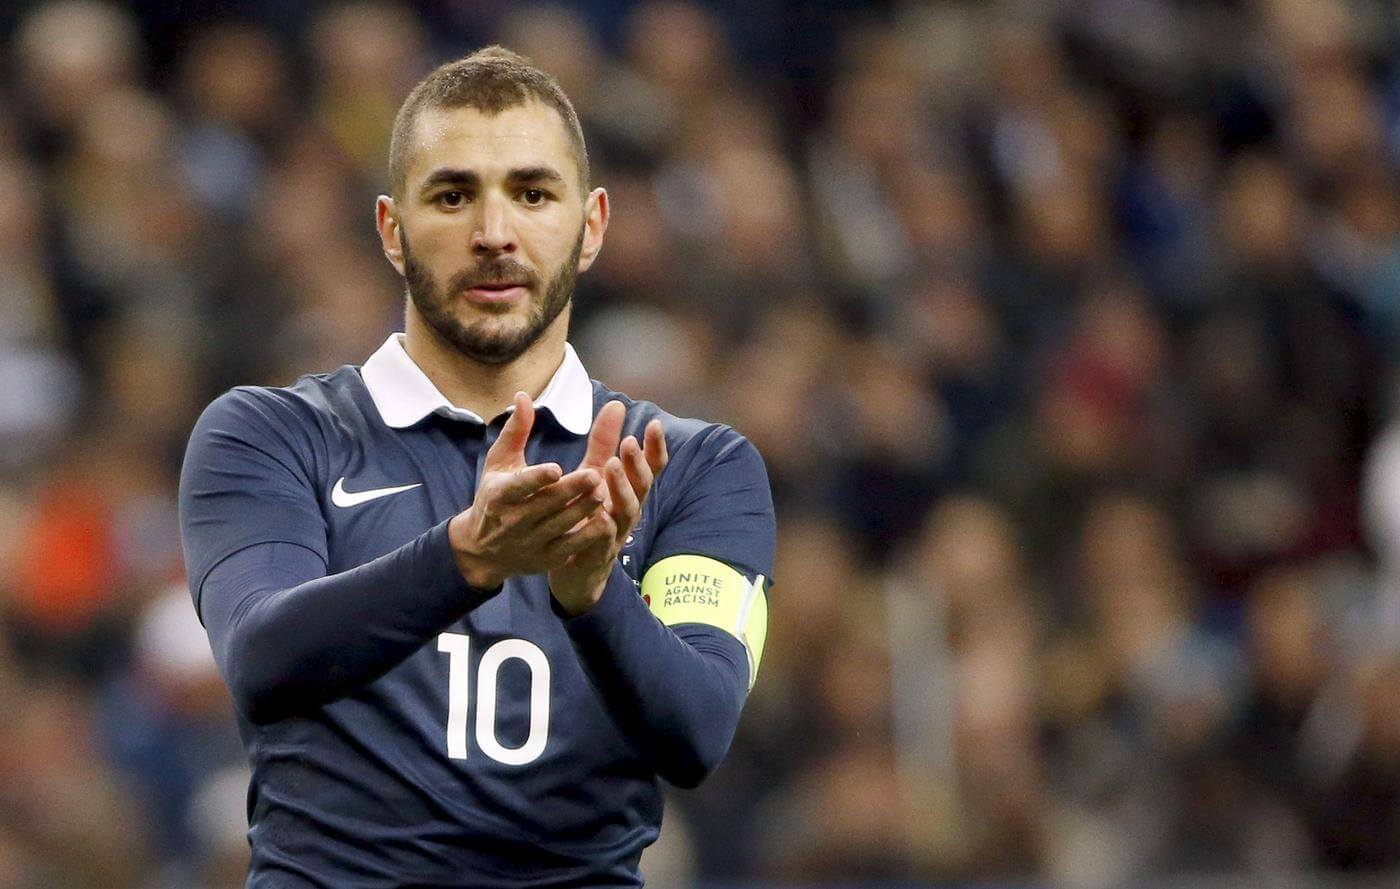 Karim Benzema of Real Madrid FC will not be representing France this summer at the World Cup 2018 in Russia.